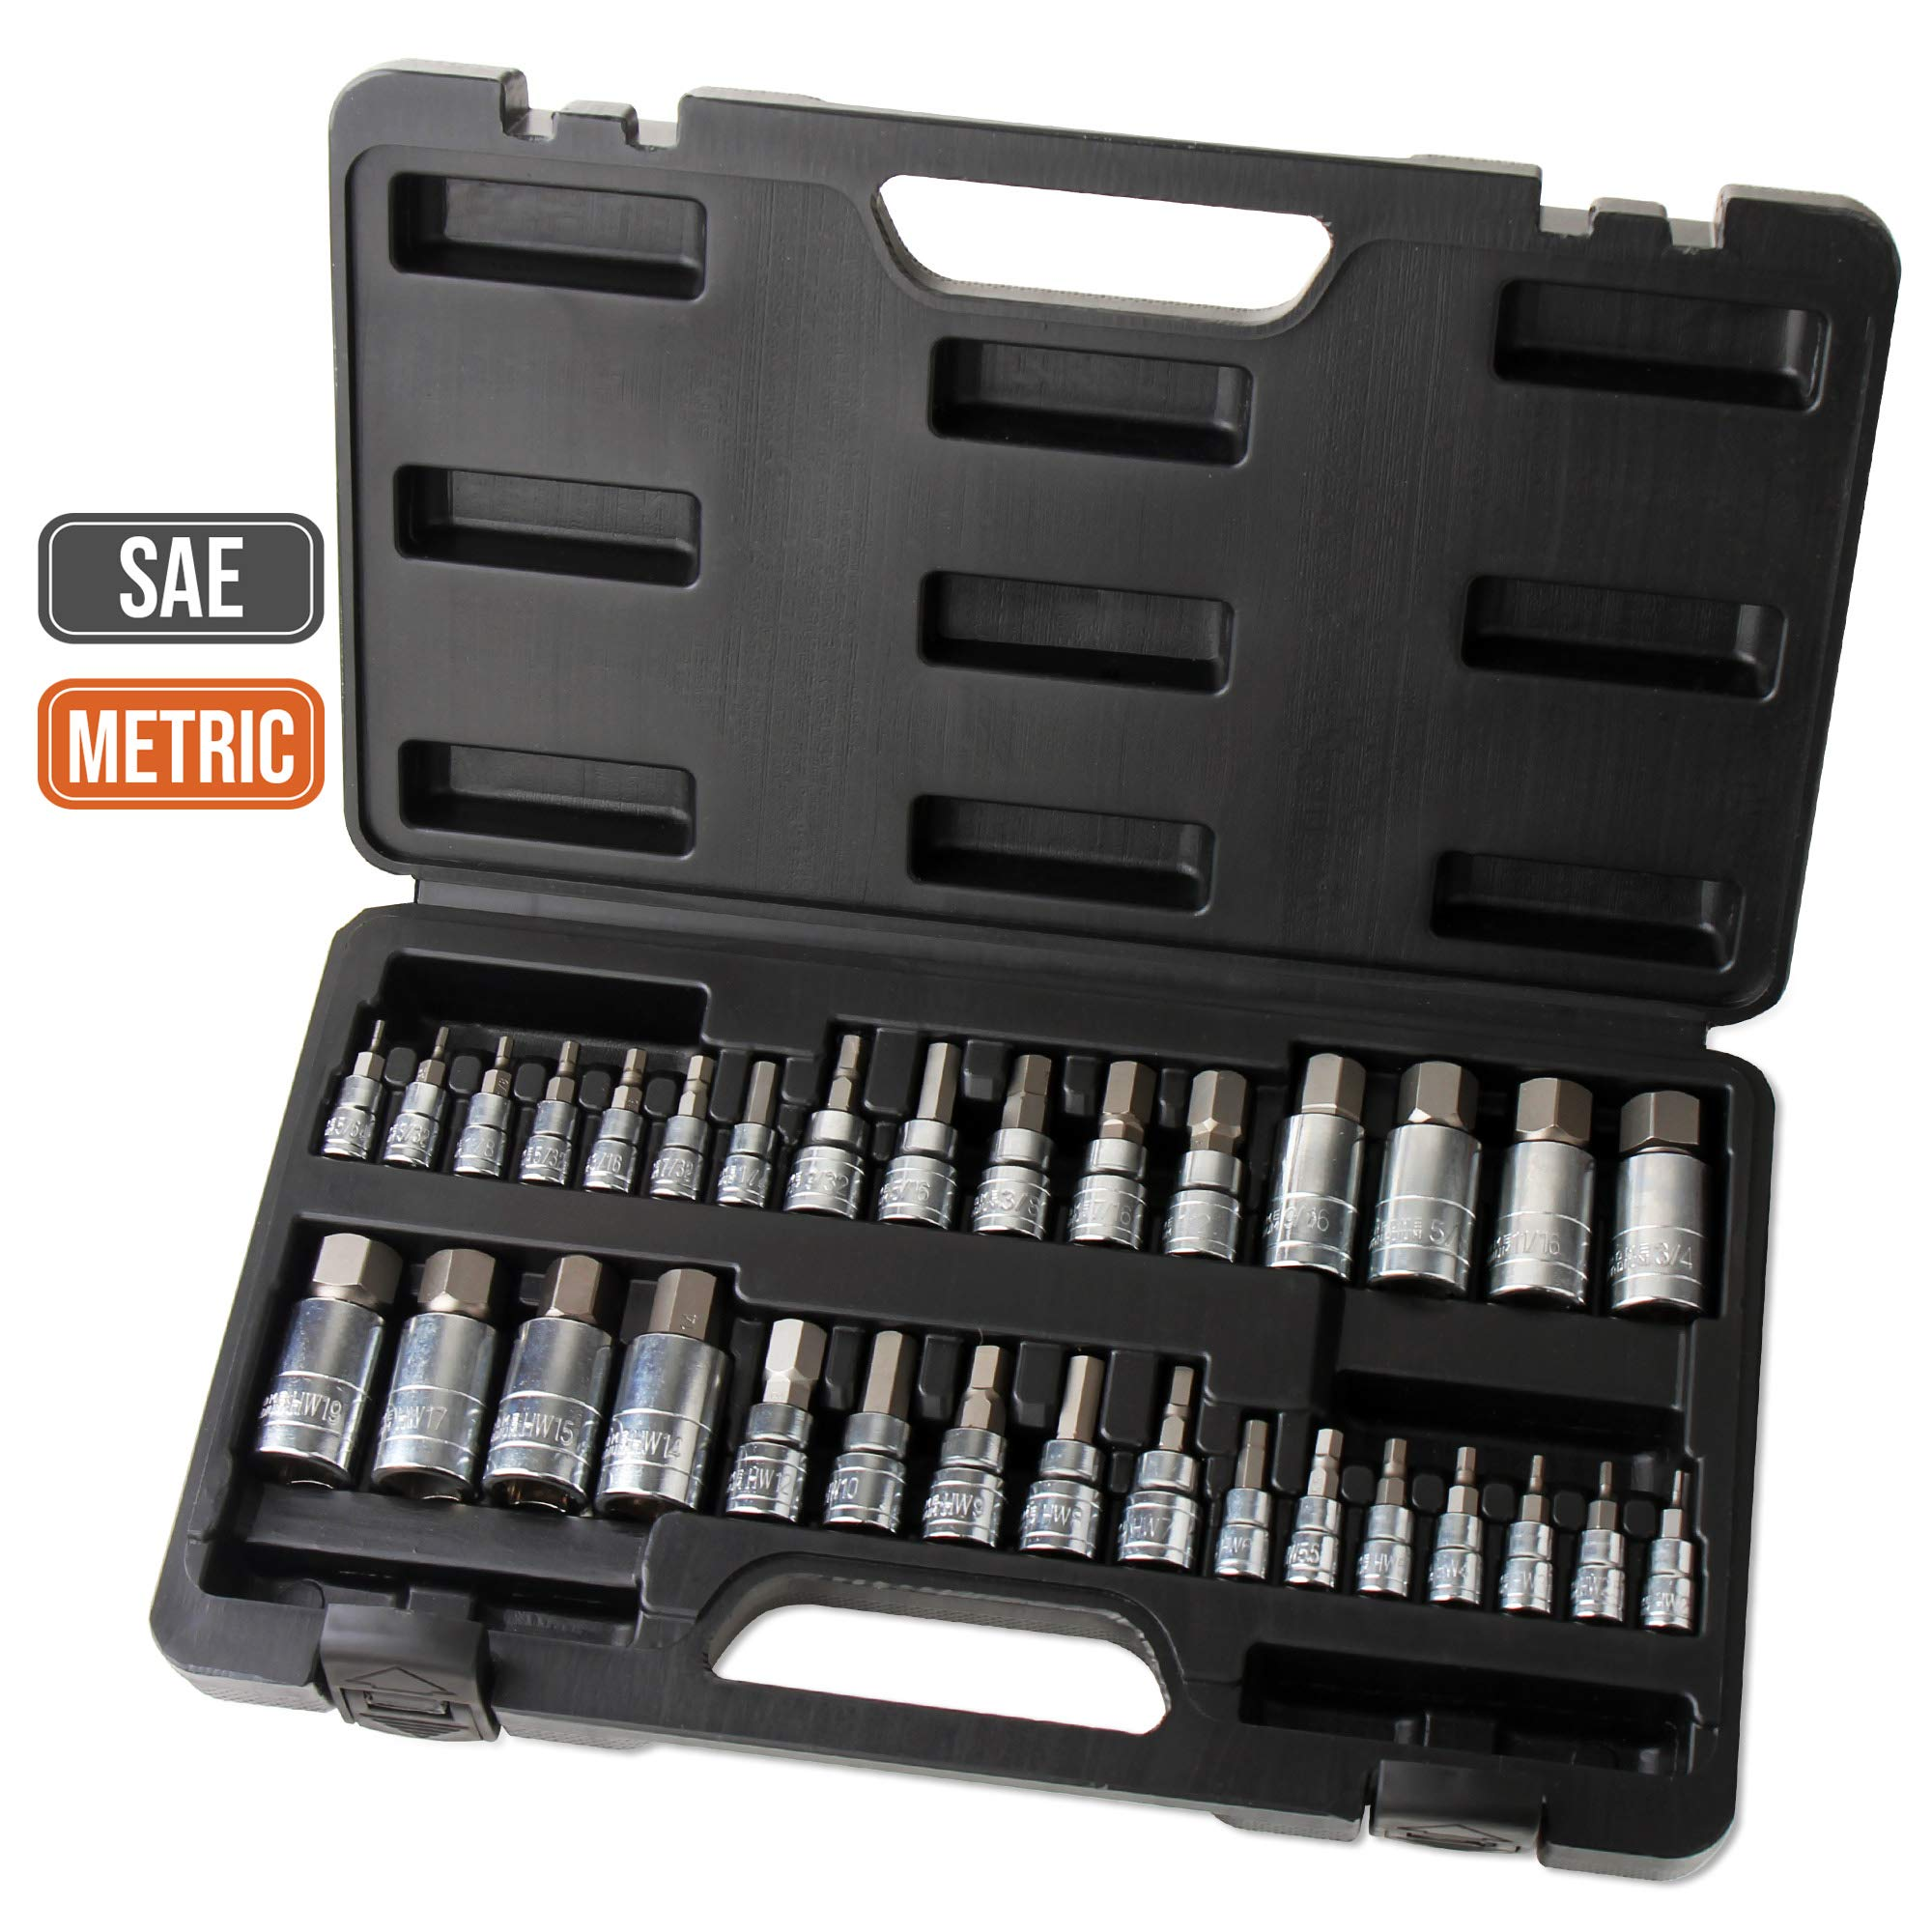 Hi-Spec 32 Piece S2 Steel Hex Bit Socket Set with SAE and Metric 1/4'', 3/8'' & 1/2'' Drive Bit Sockets Chrome Finish for Automotive, Mechanical and Engineering Tasks - All in Sturdy Storage Case by Hi-Spec